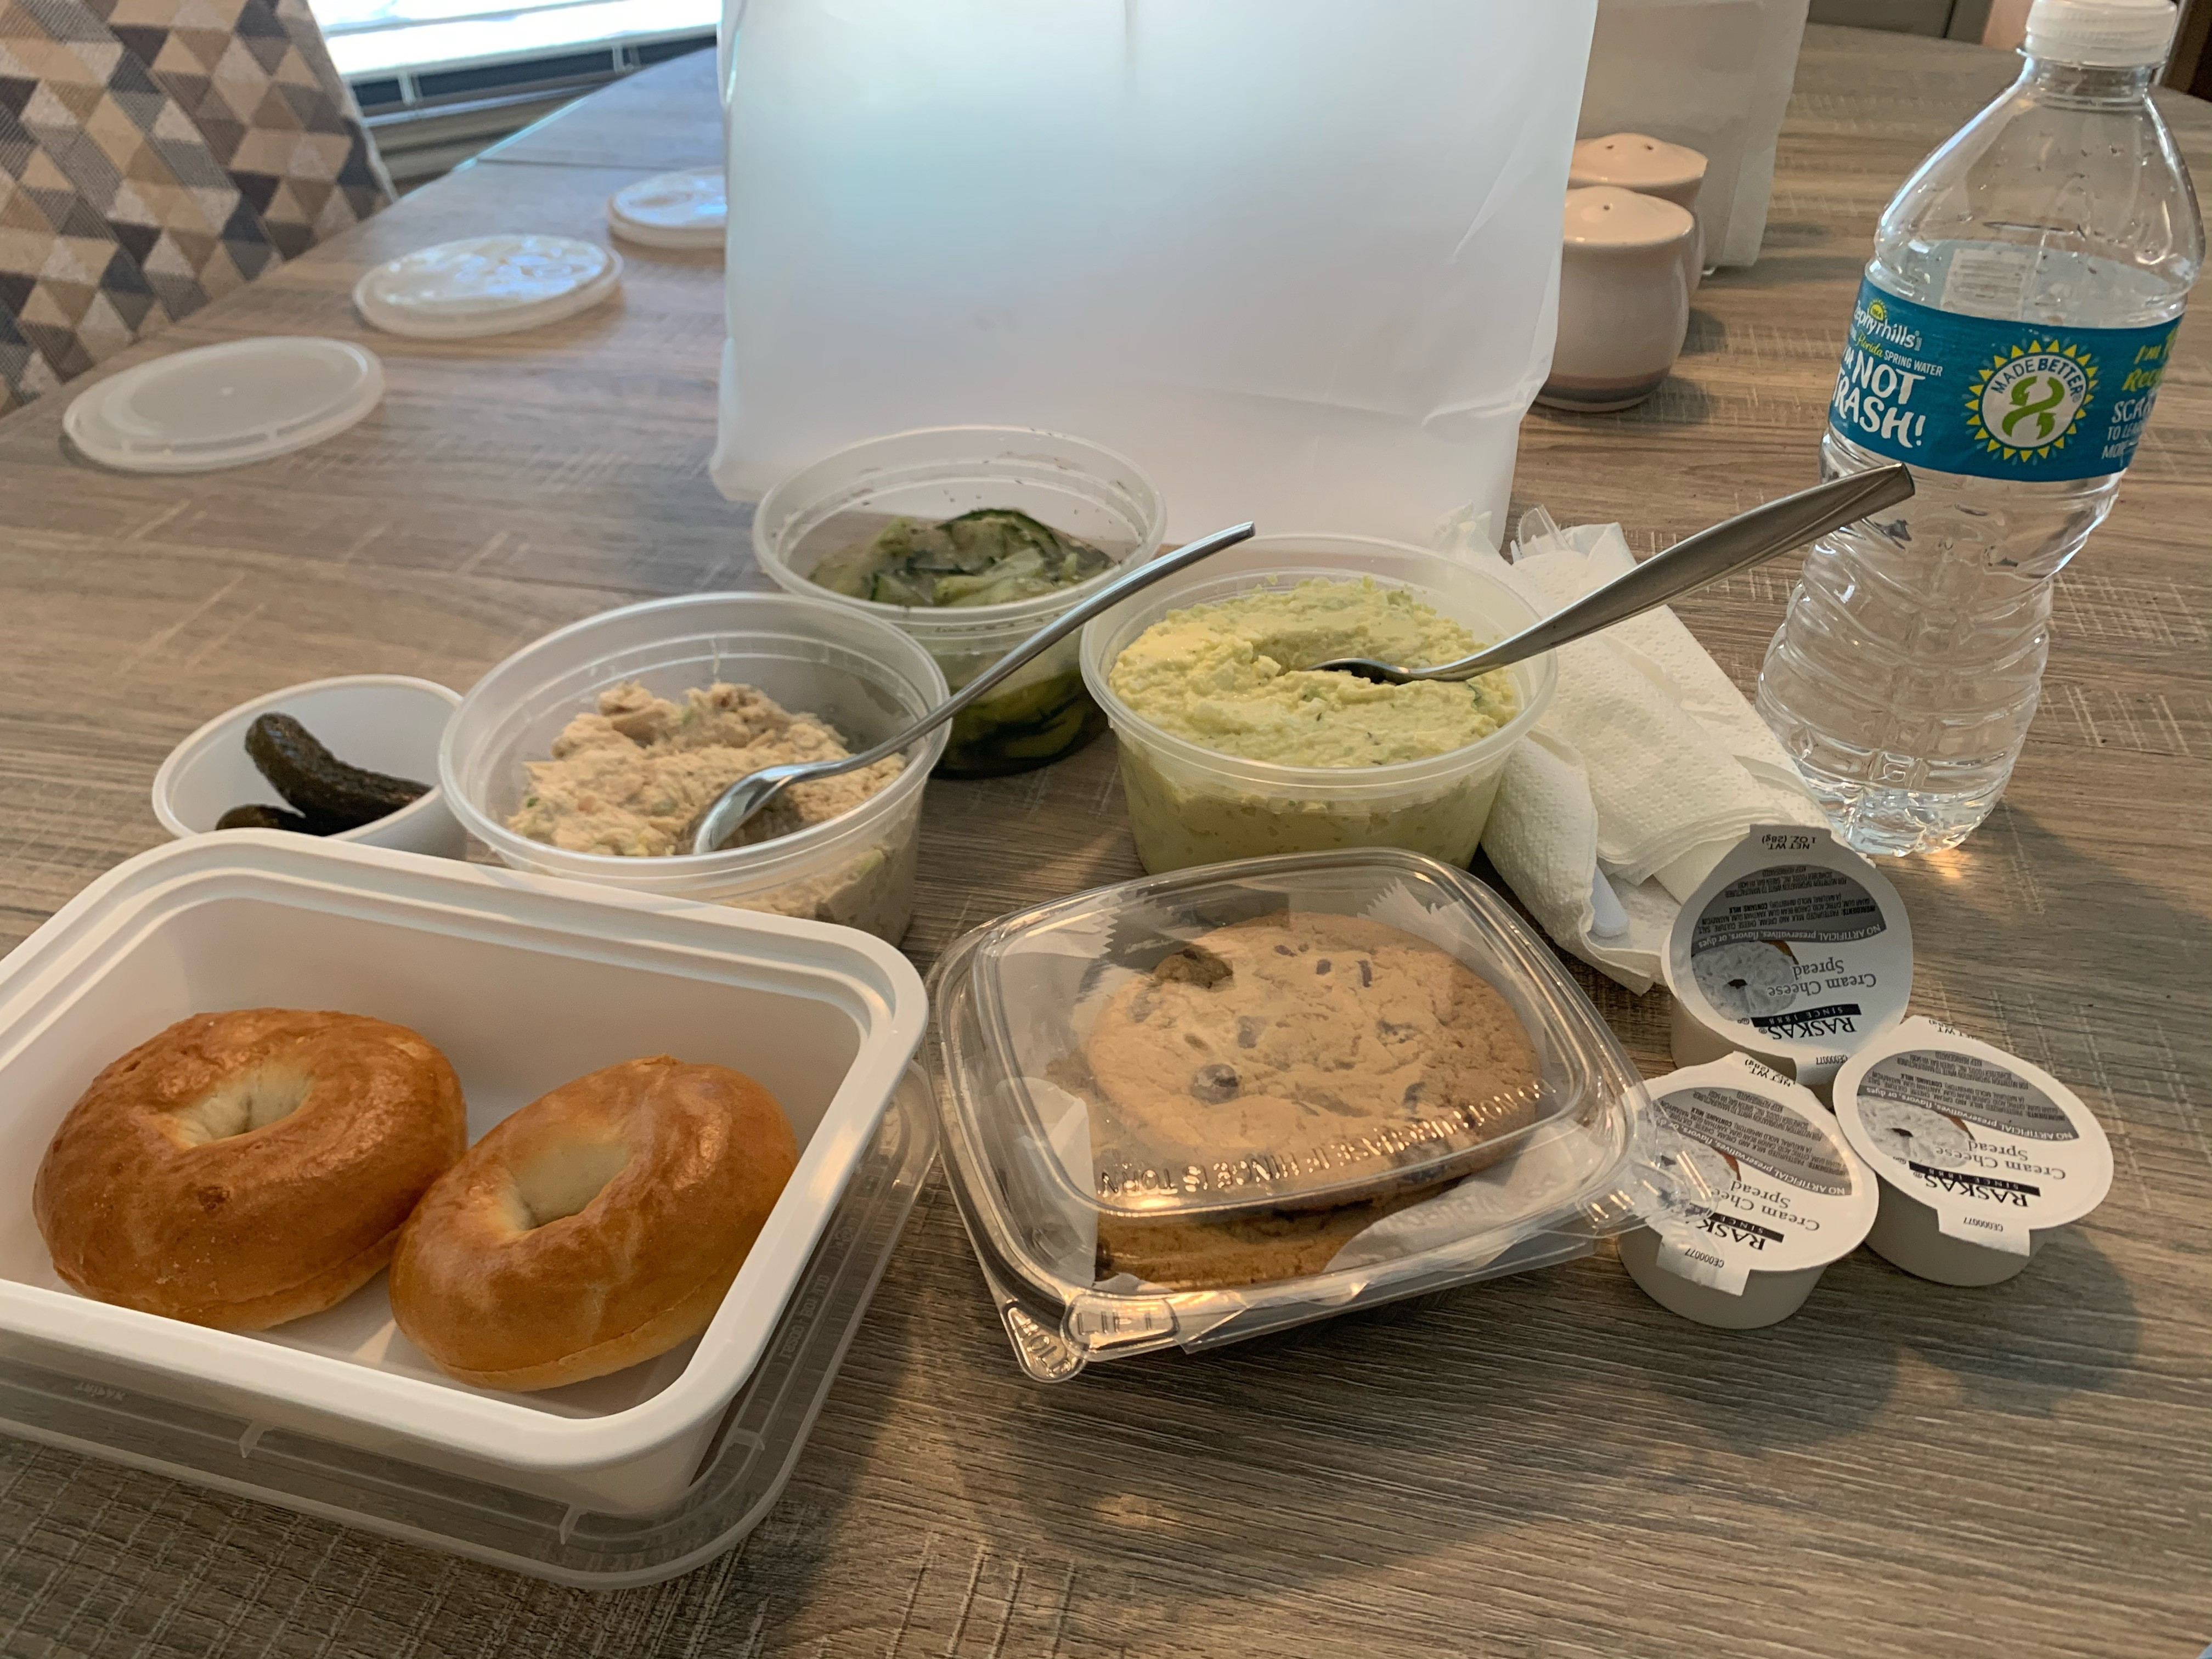 """</a>                                                                                                                                                                                       <span class=""""slider_description"""">Kiddush Lunch to Go! Now available to order, registration closes the Tuesday before each Shabbat.</span>                                                                                     <a href=""""https://www.cbsclearwater.org/form/kiddush-to-go-3/12/2021.html"""" class=""""slider_link""""                             target=""""_blank"""">                             Click here to reserve your lunch!                            </a>"""